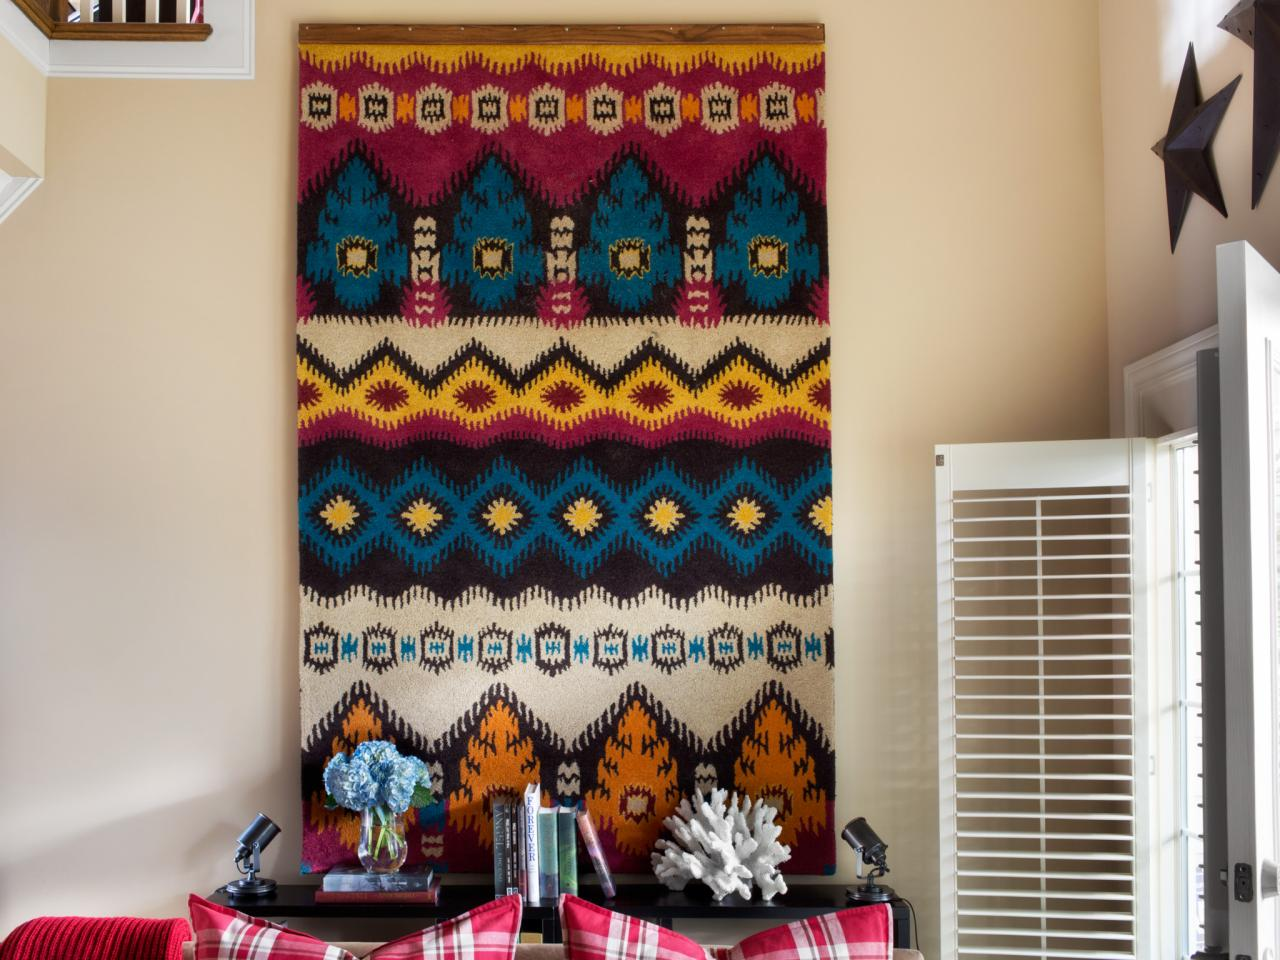 How To Turn A Rug Into Wall Art Tapestry Hgtv